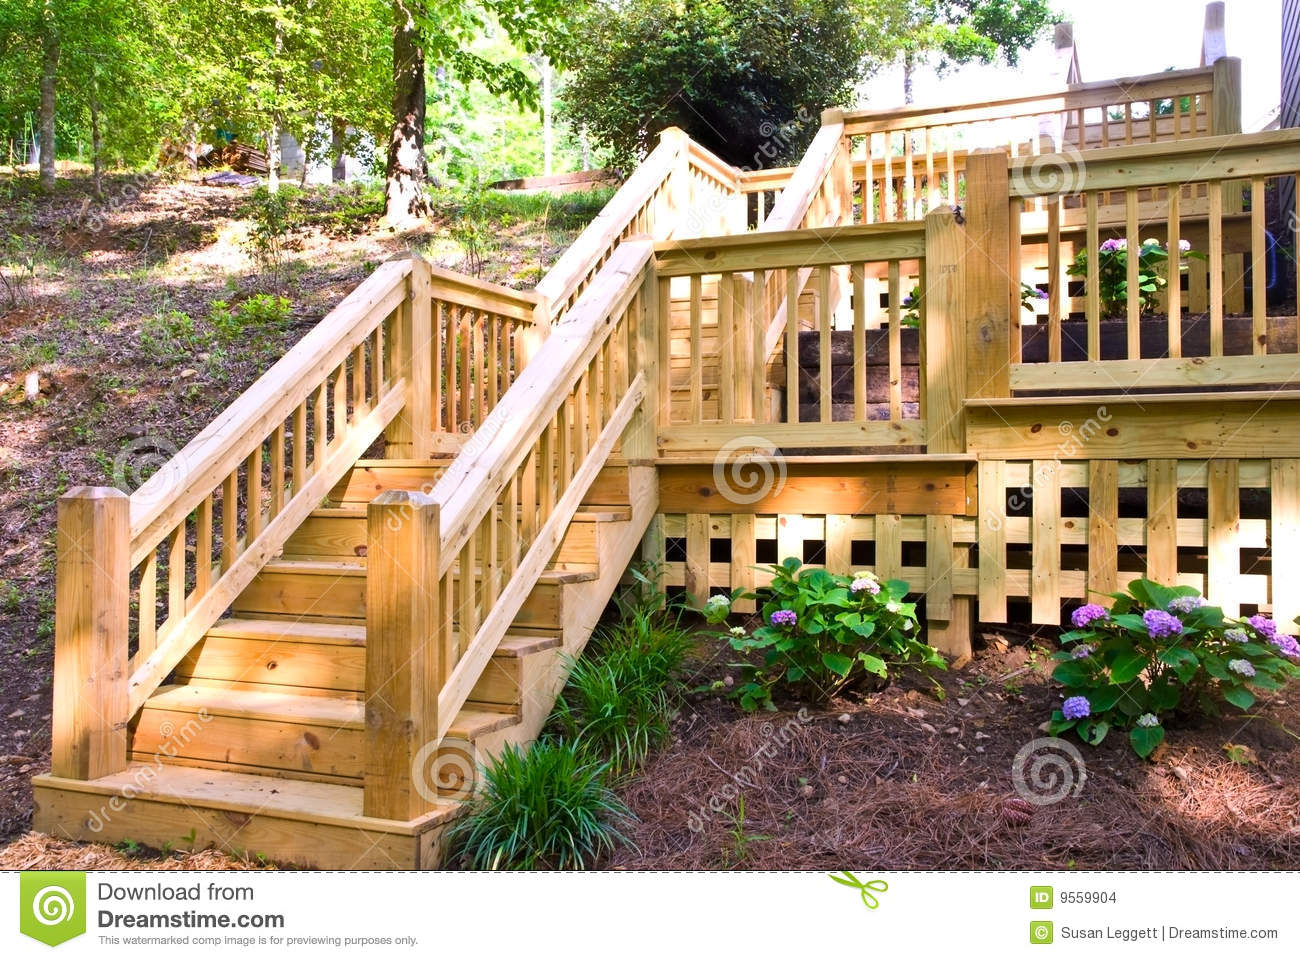 New Wooden Deck And Steps On The Back Of A House  The Wood Is